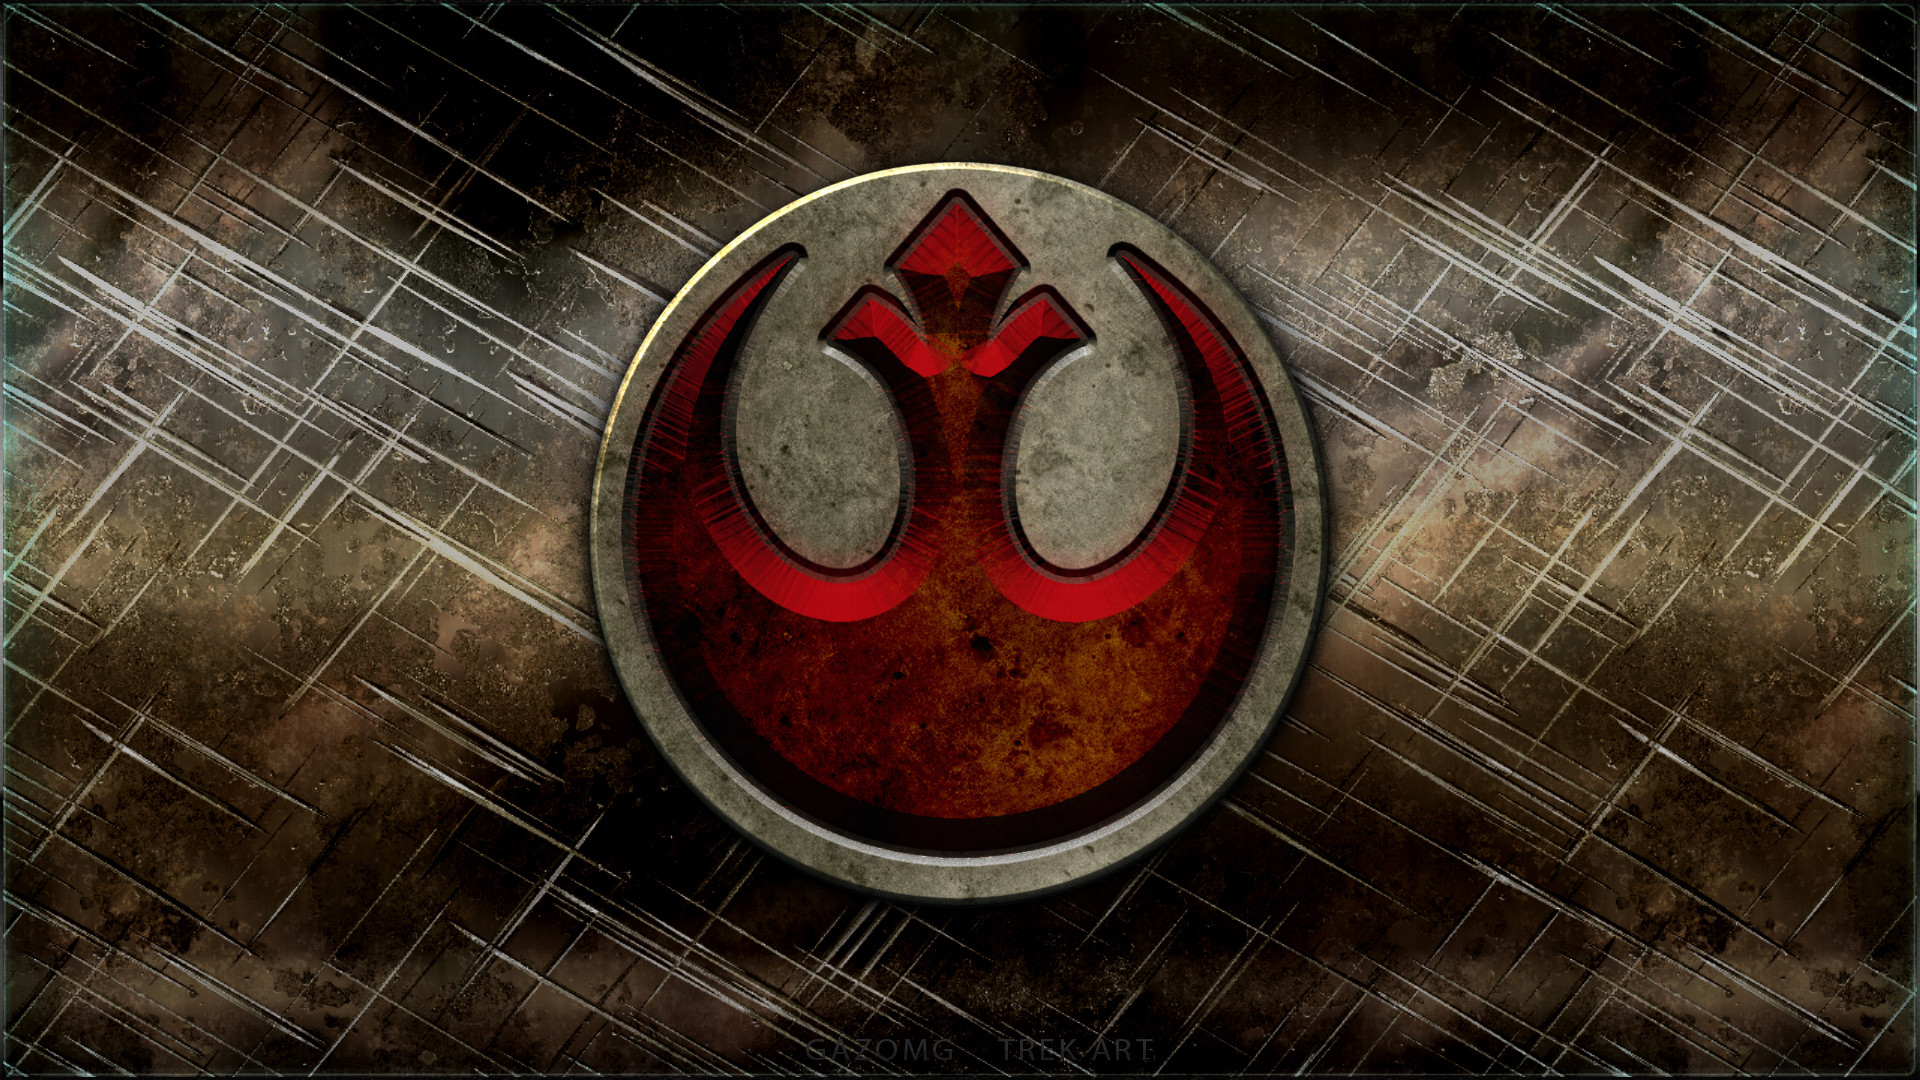 Star Wars Rebel Alliance Logo By Gazomg Data Src Emblem 1920x1080 Wallpaper Teahub Io